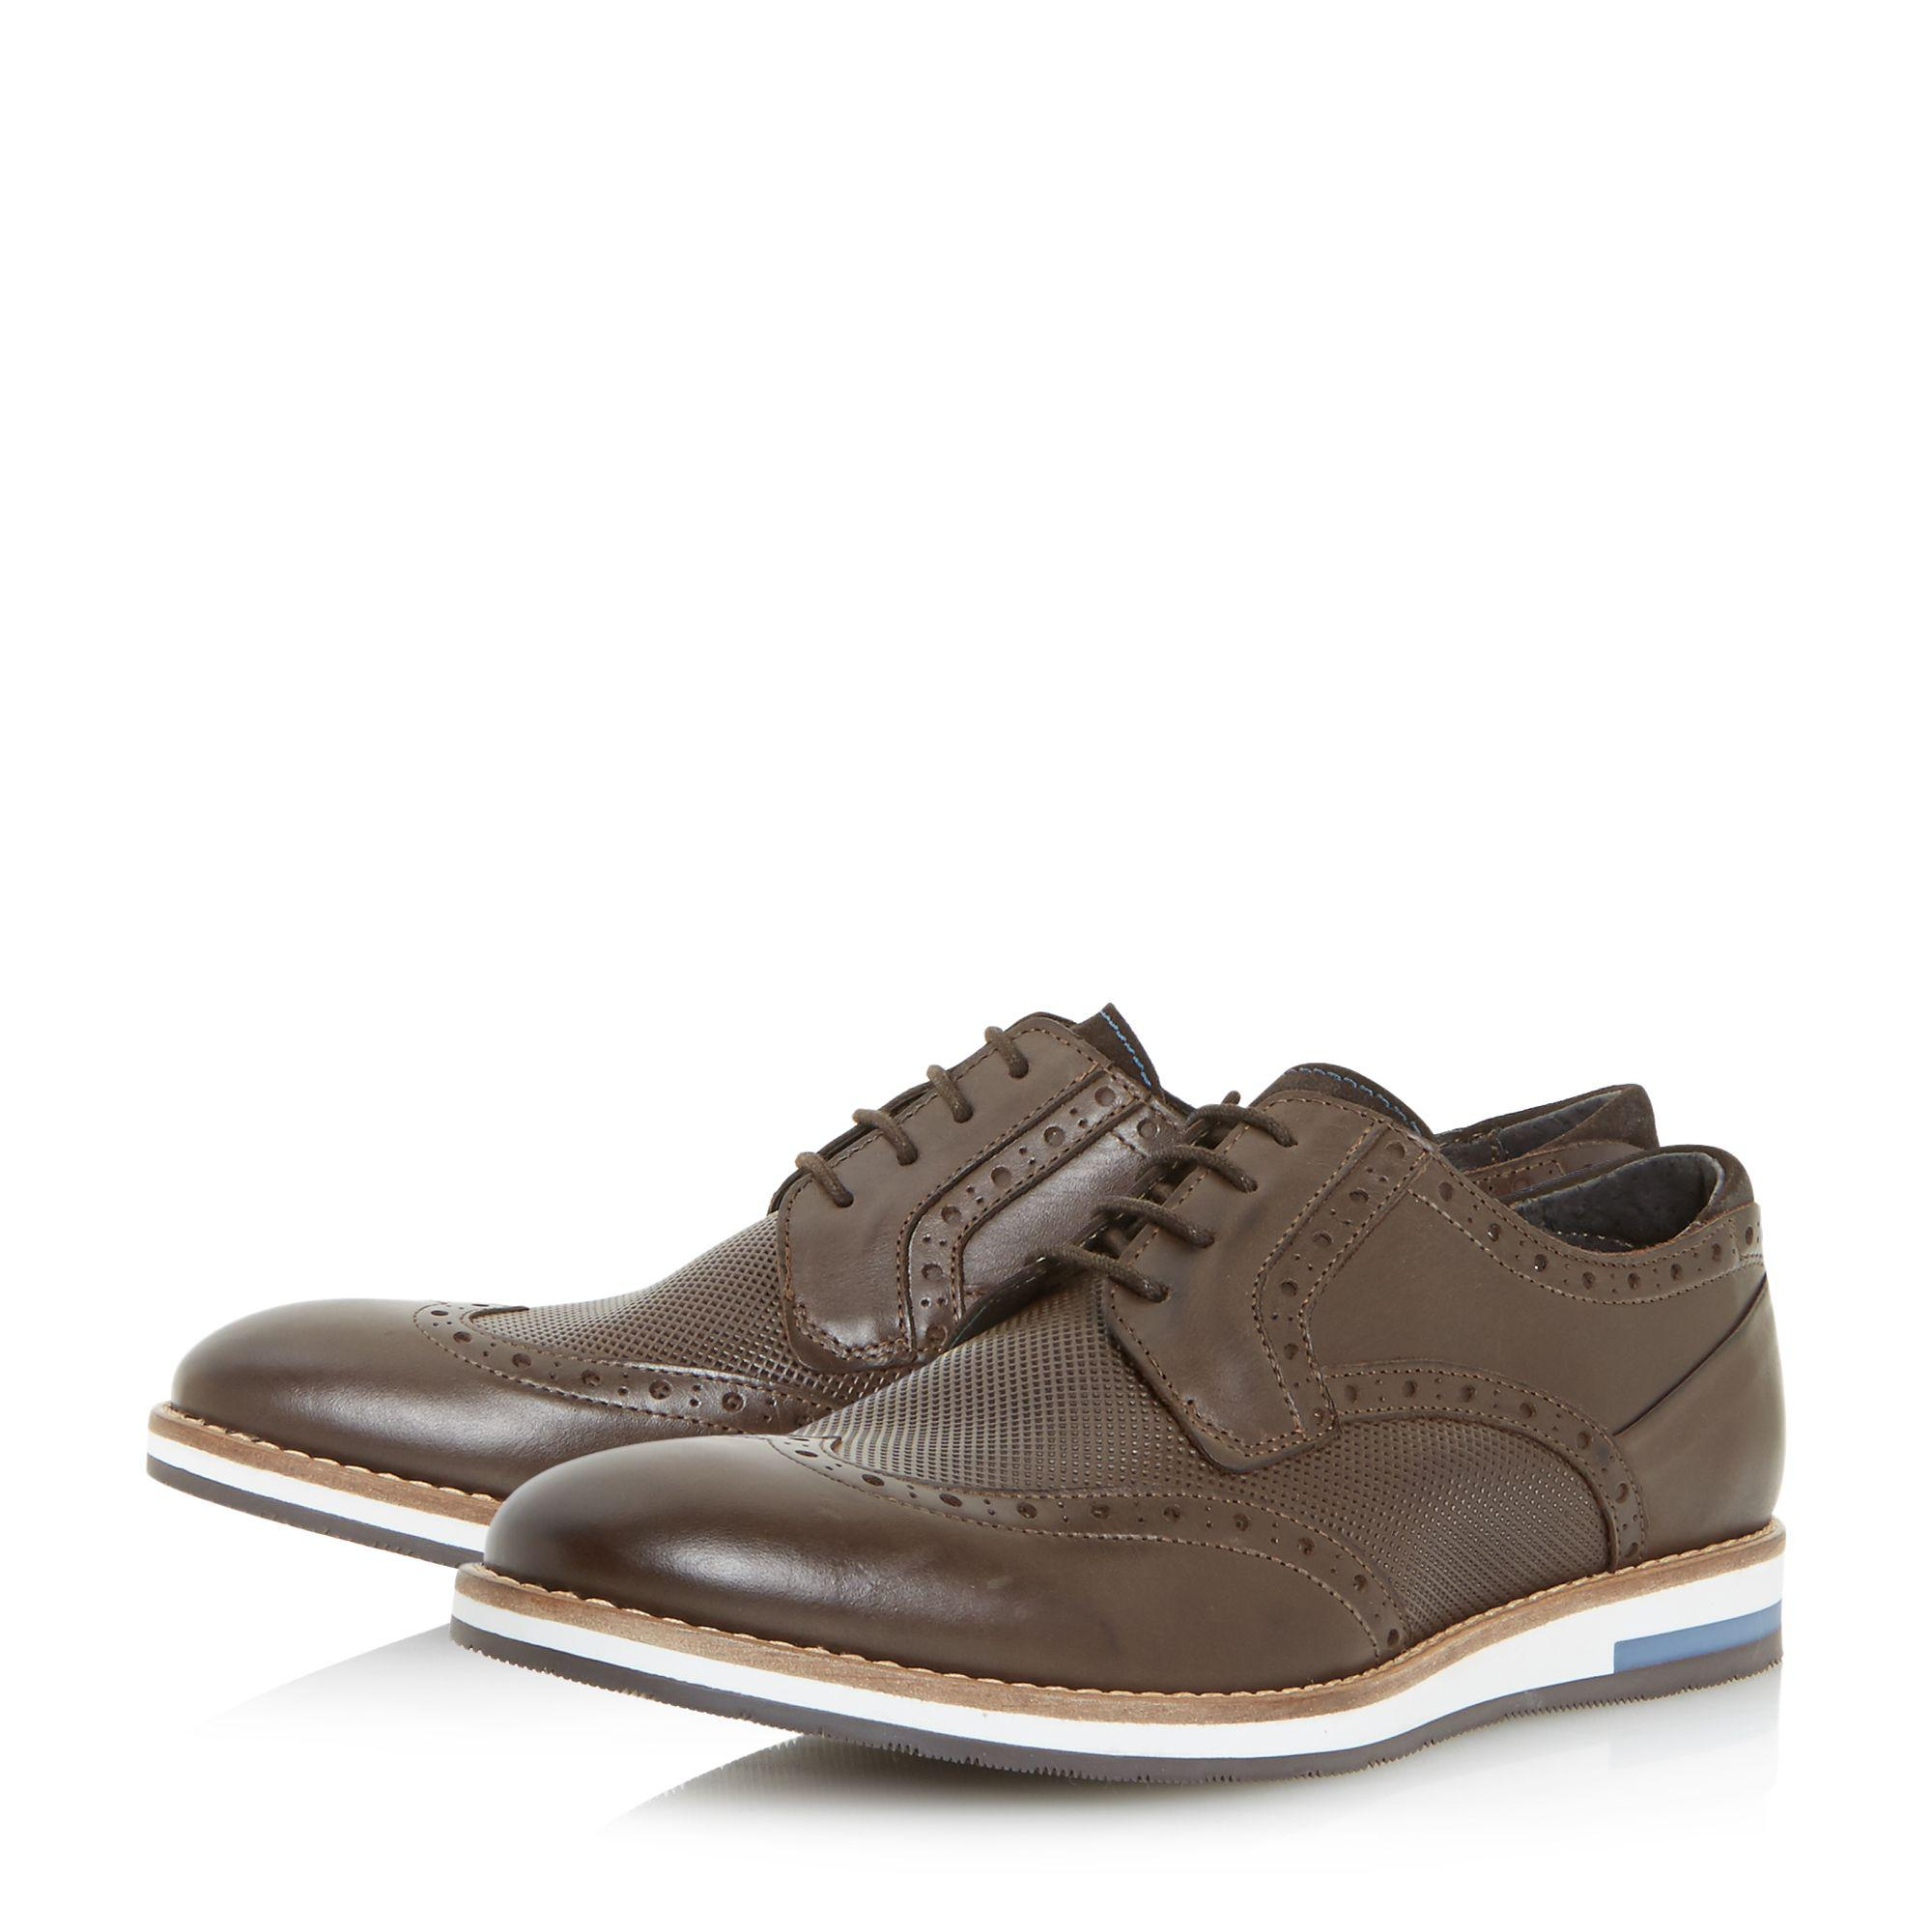 Bertie Leather Baker Hill Wedge Sole Brogue Shoes in Brown for Men